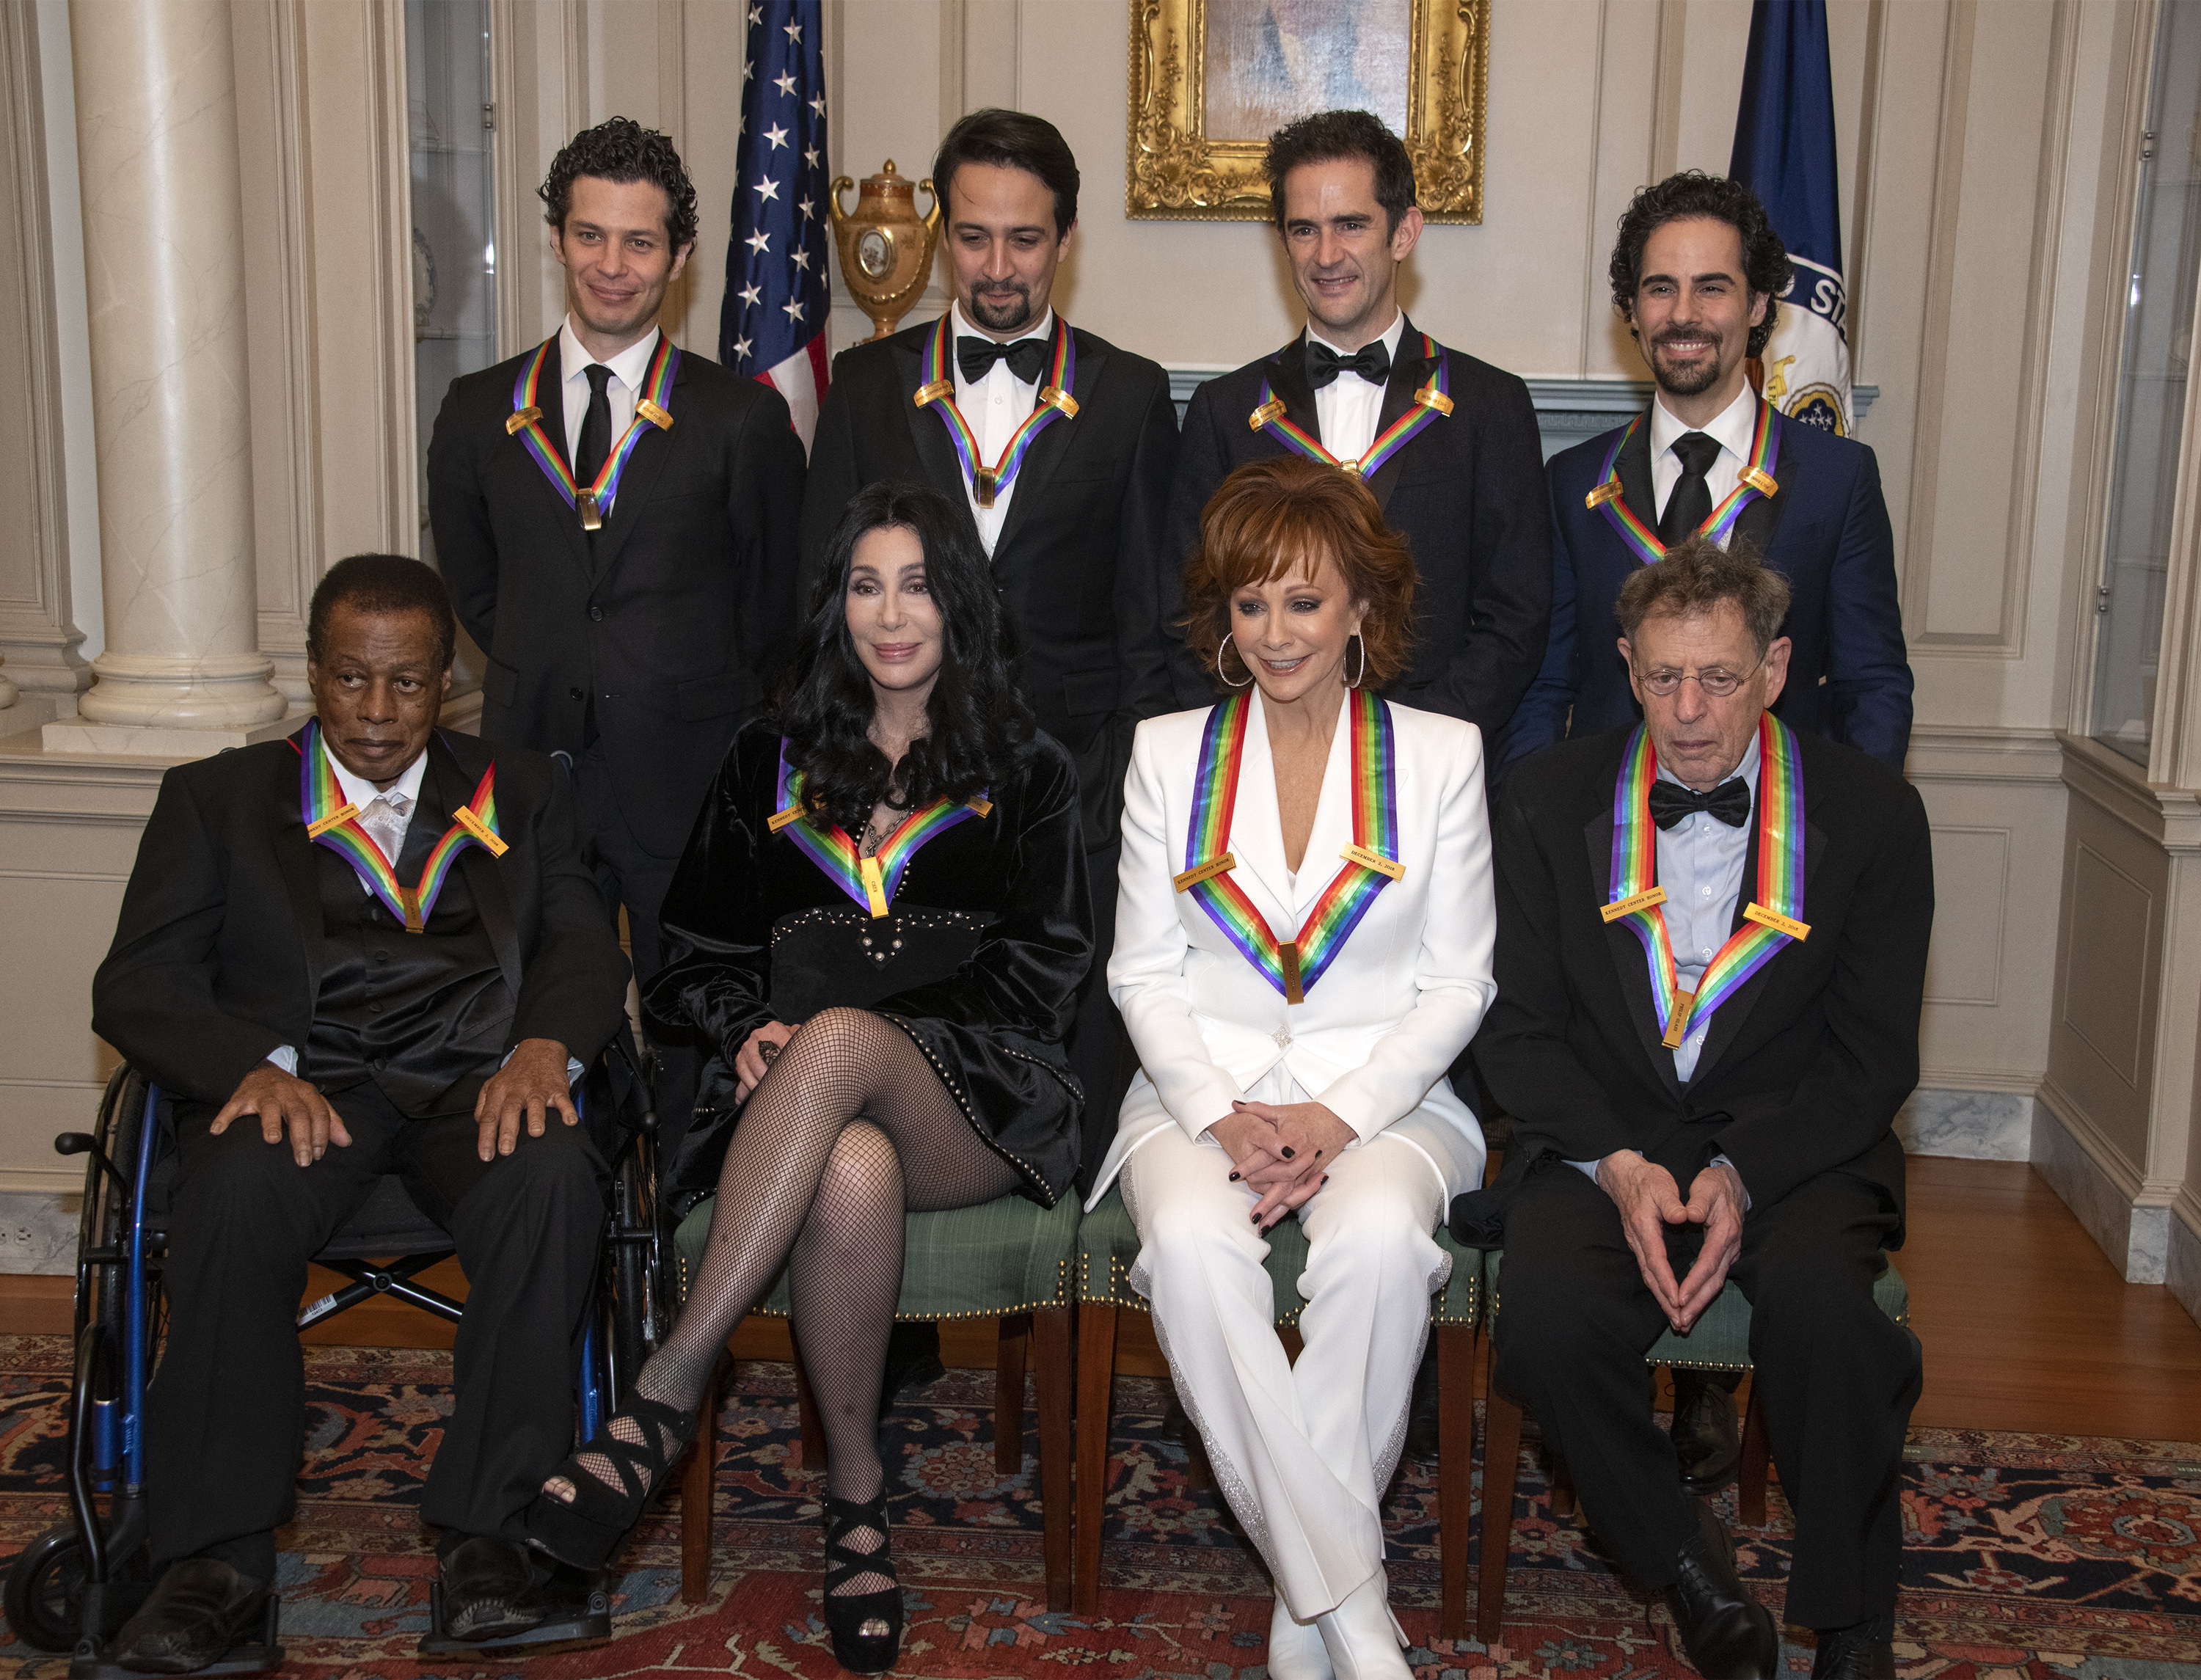 Kennedy Center Honors 2018 Honorees